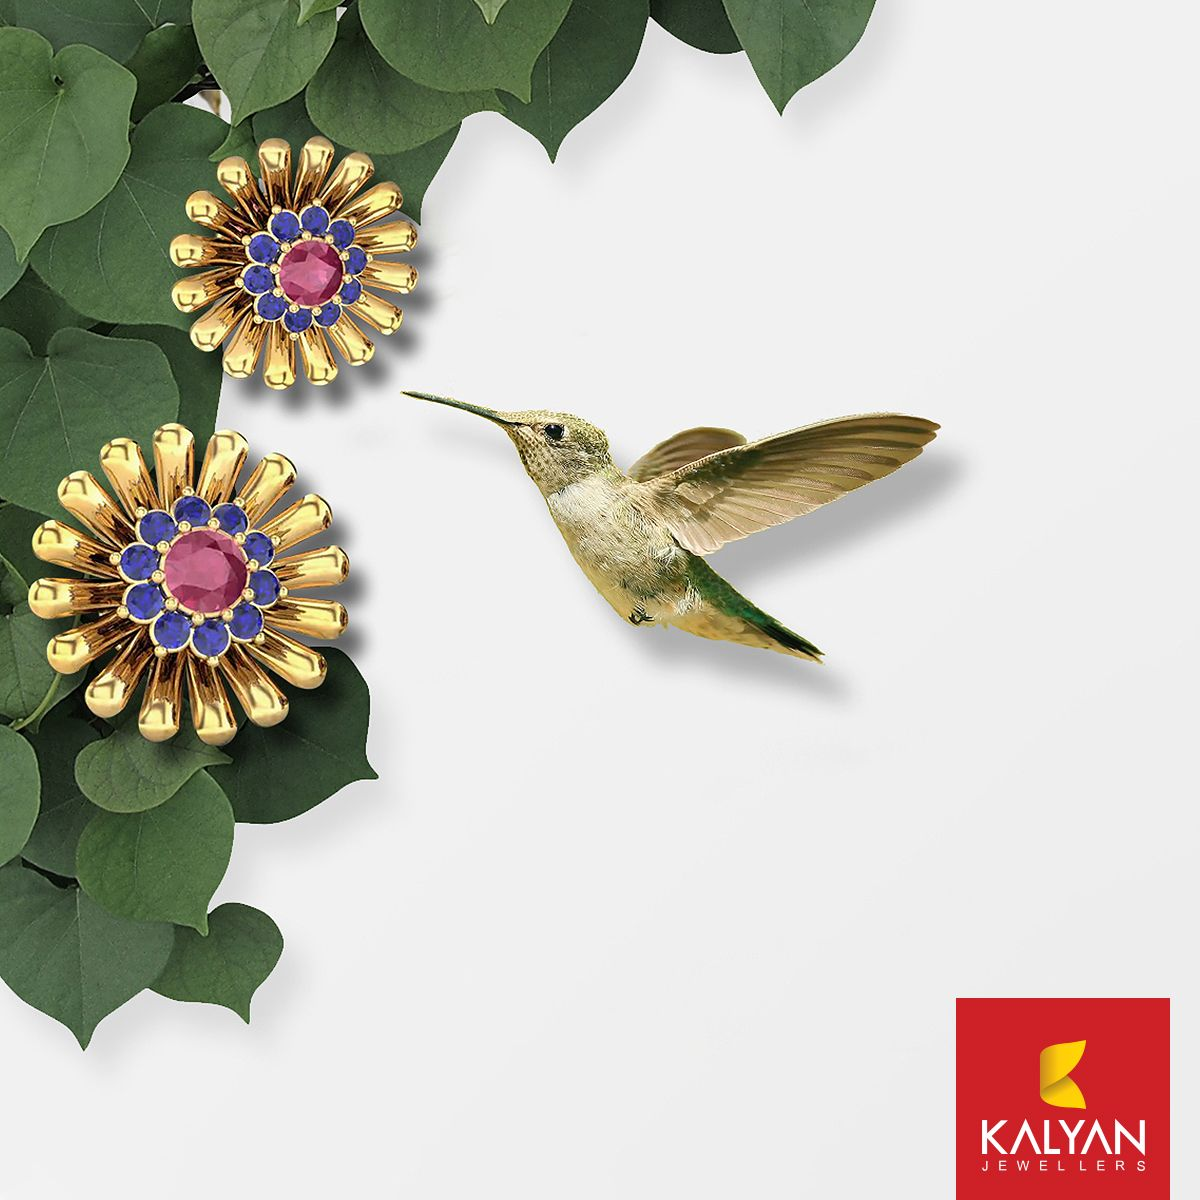 #kalyanjewellers #stayhome #staysafe #thistooshallpass #trustnature #natureheals #fightcovid19